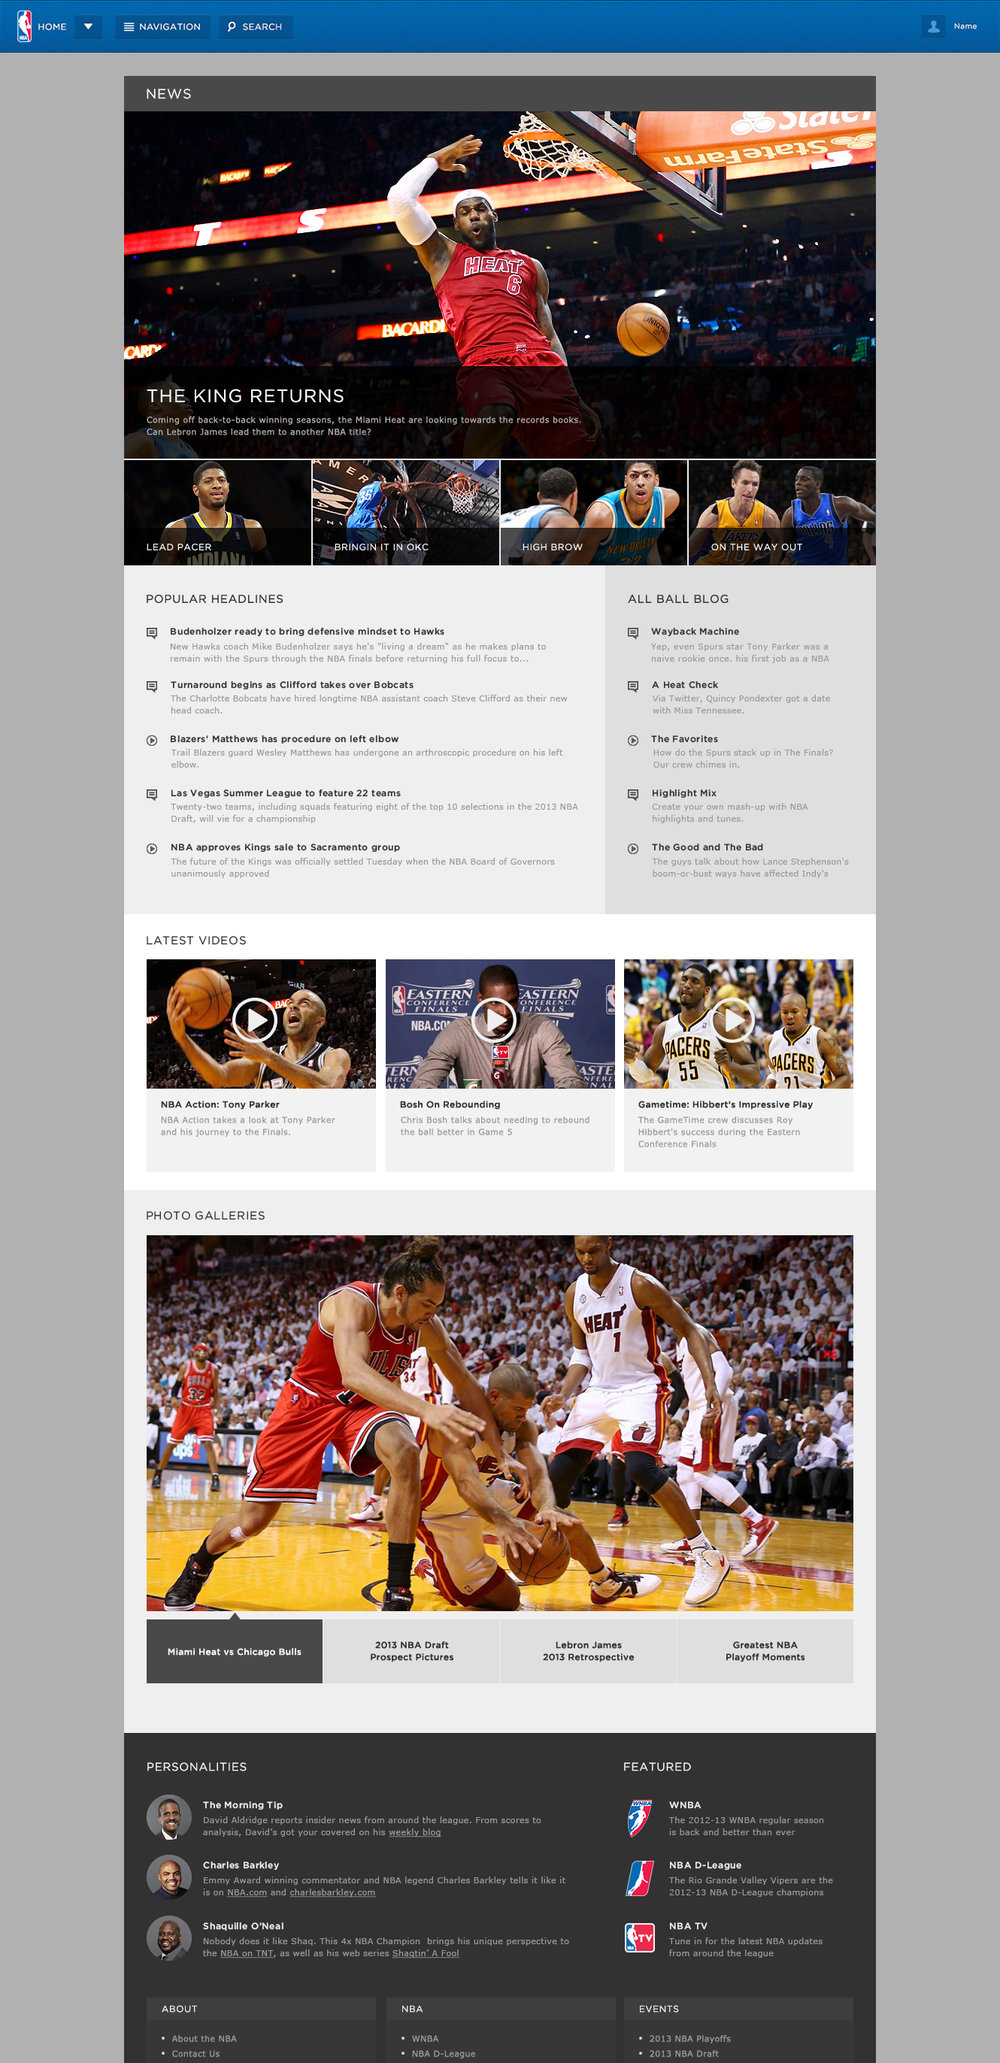 NBAcom_Redesign_NewsMain_V3.jpg